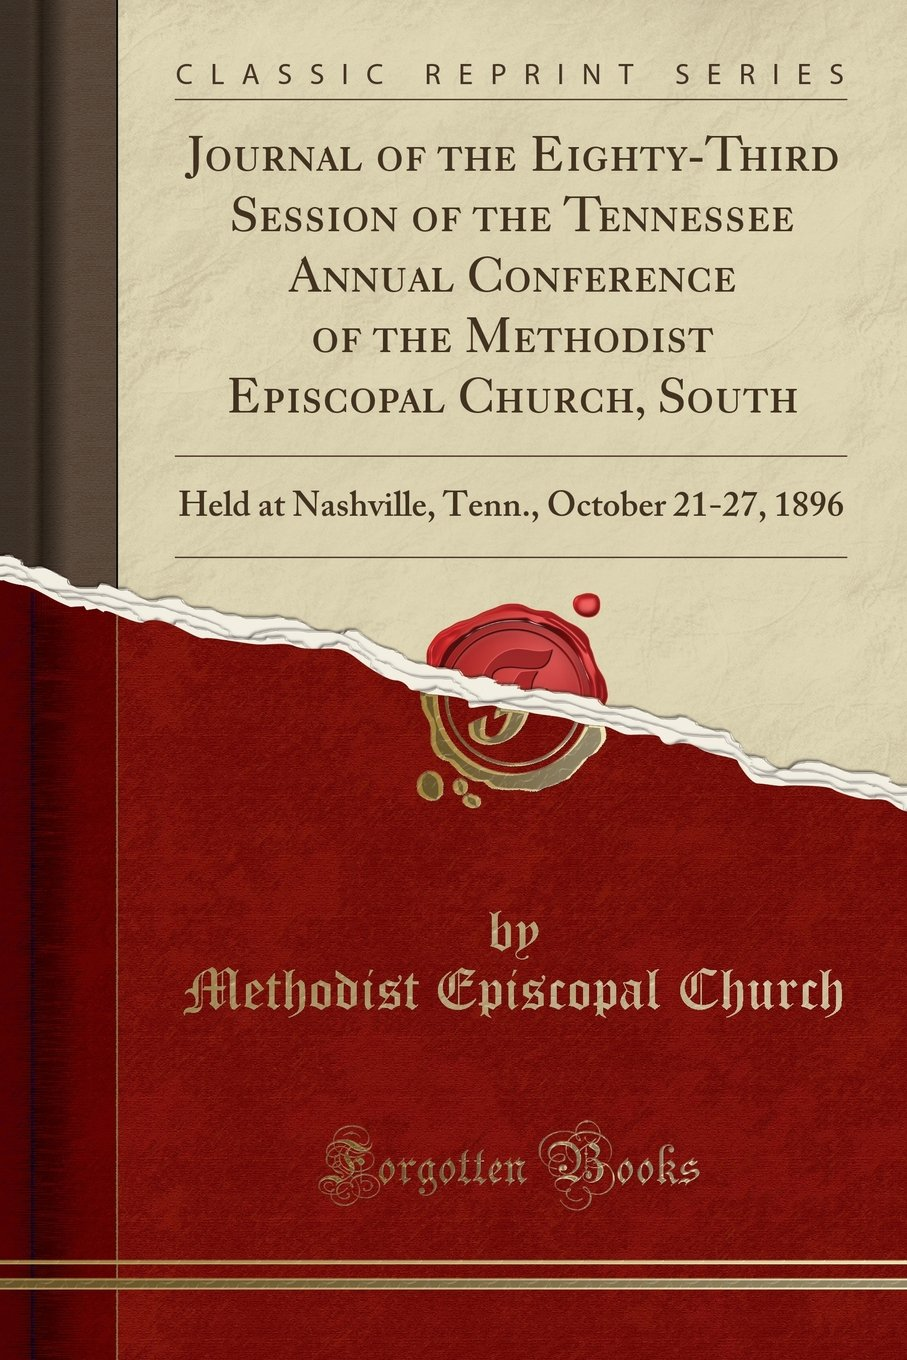 Journal of the Eighty-Third Session of the Tennessee Annual Conference of the Methodist Episcopal Church, South: Held at Nashville, Tenn., October 21-27, 1896 (Classic Reprint) pdf epub